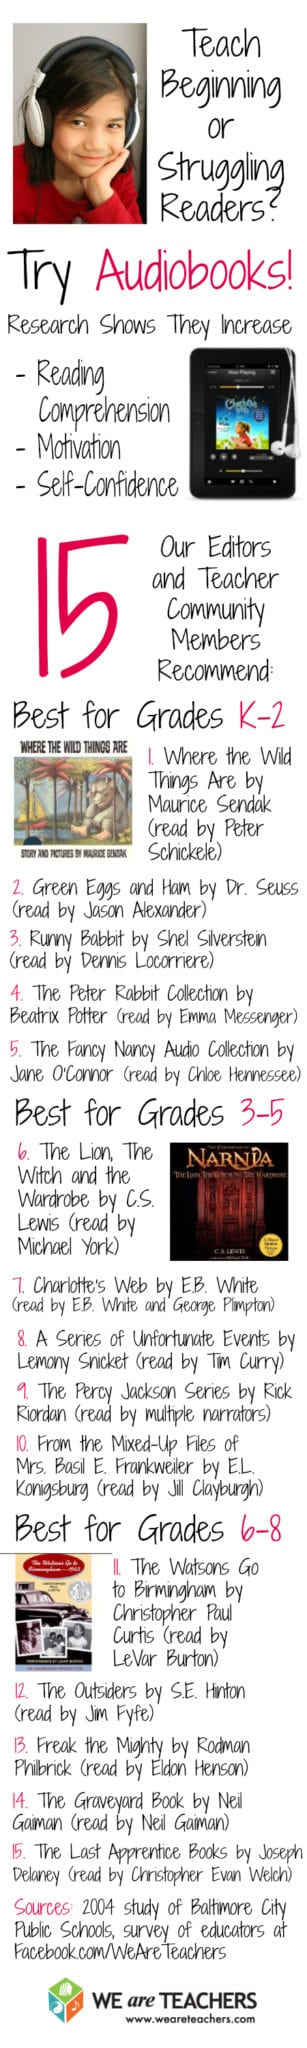 15 Audiobooks for Grades K-8